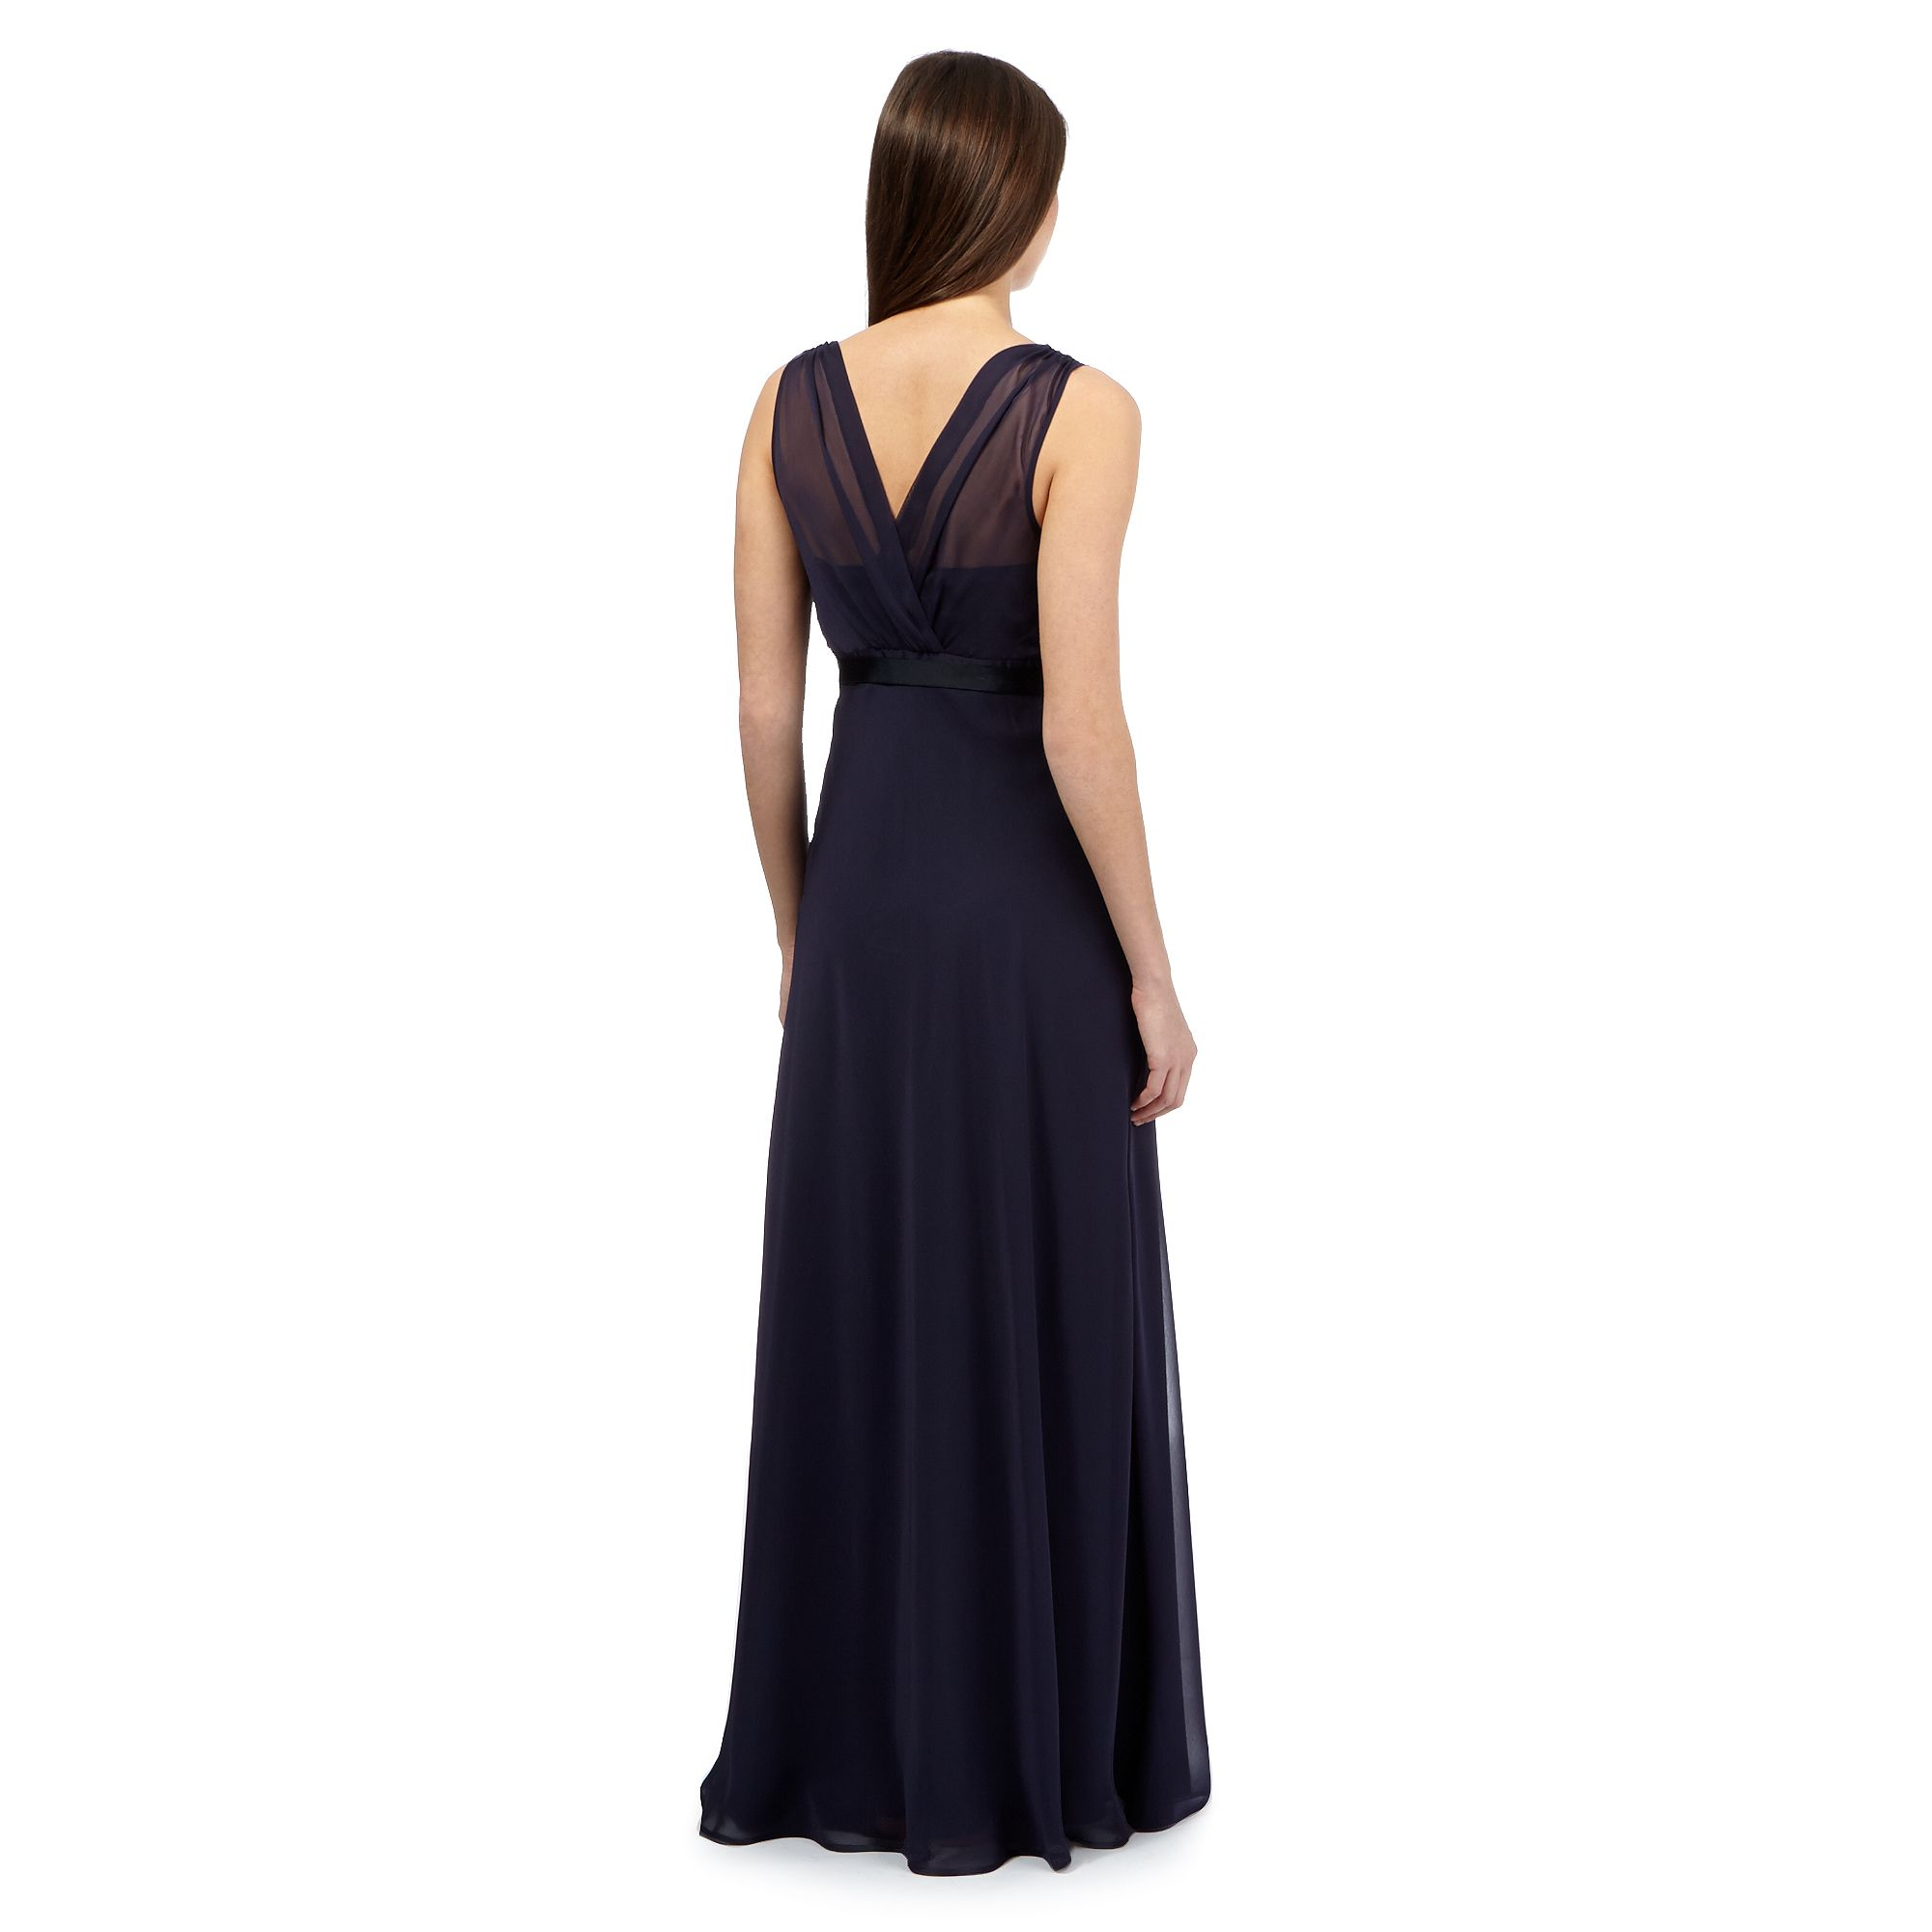 Debut womens blue chiffon v neck full length bridesmaid dress from free delivery on orders over 40 when you add to basket at the top of the page ombrellifo Images